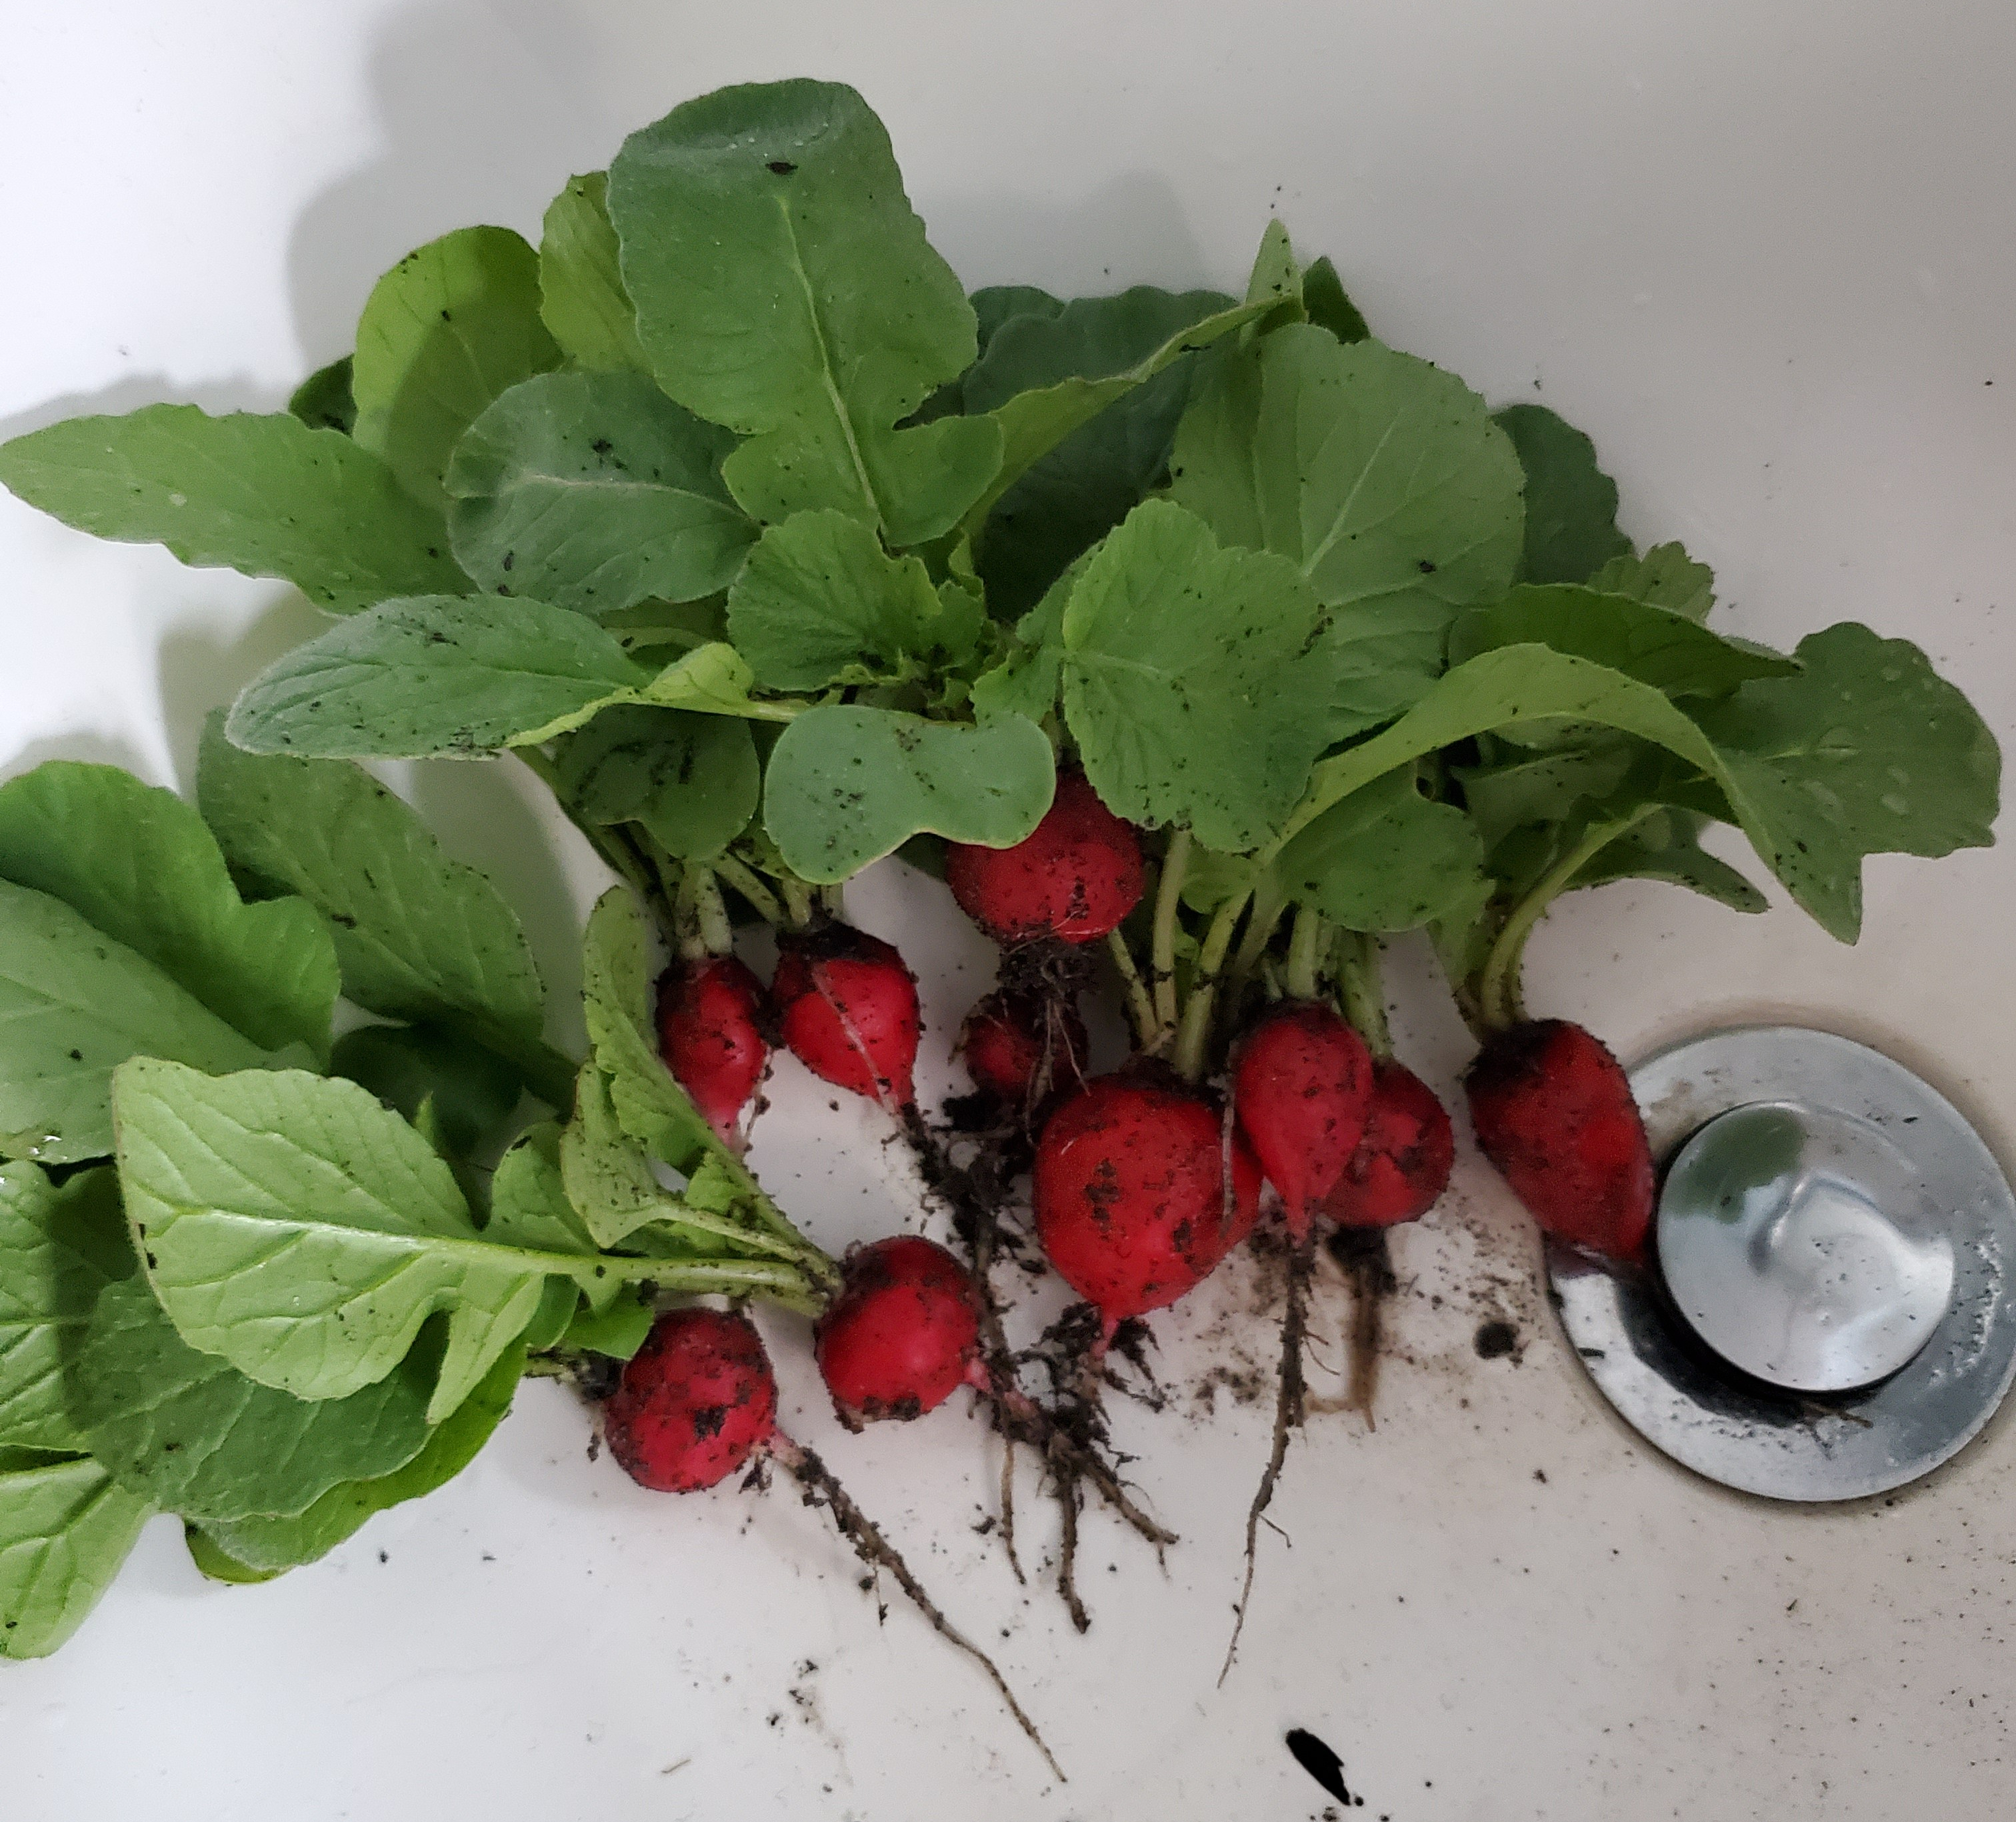 10 dirty, just pulled radishes sitting in a sink